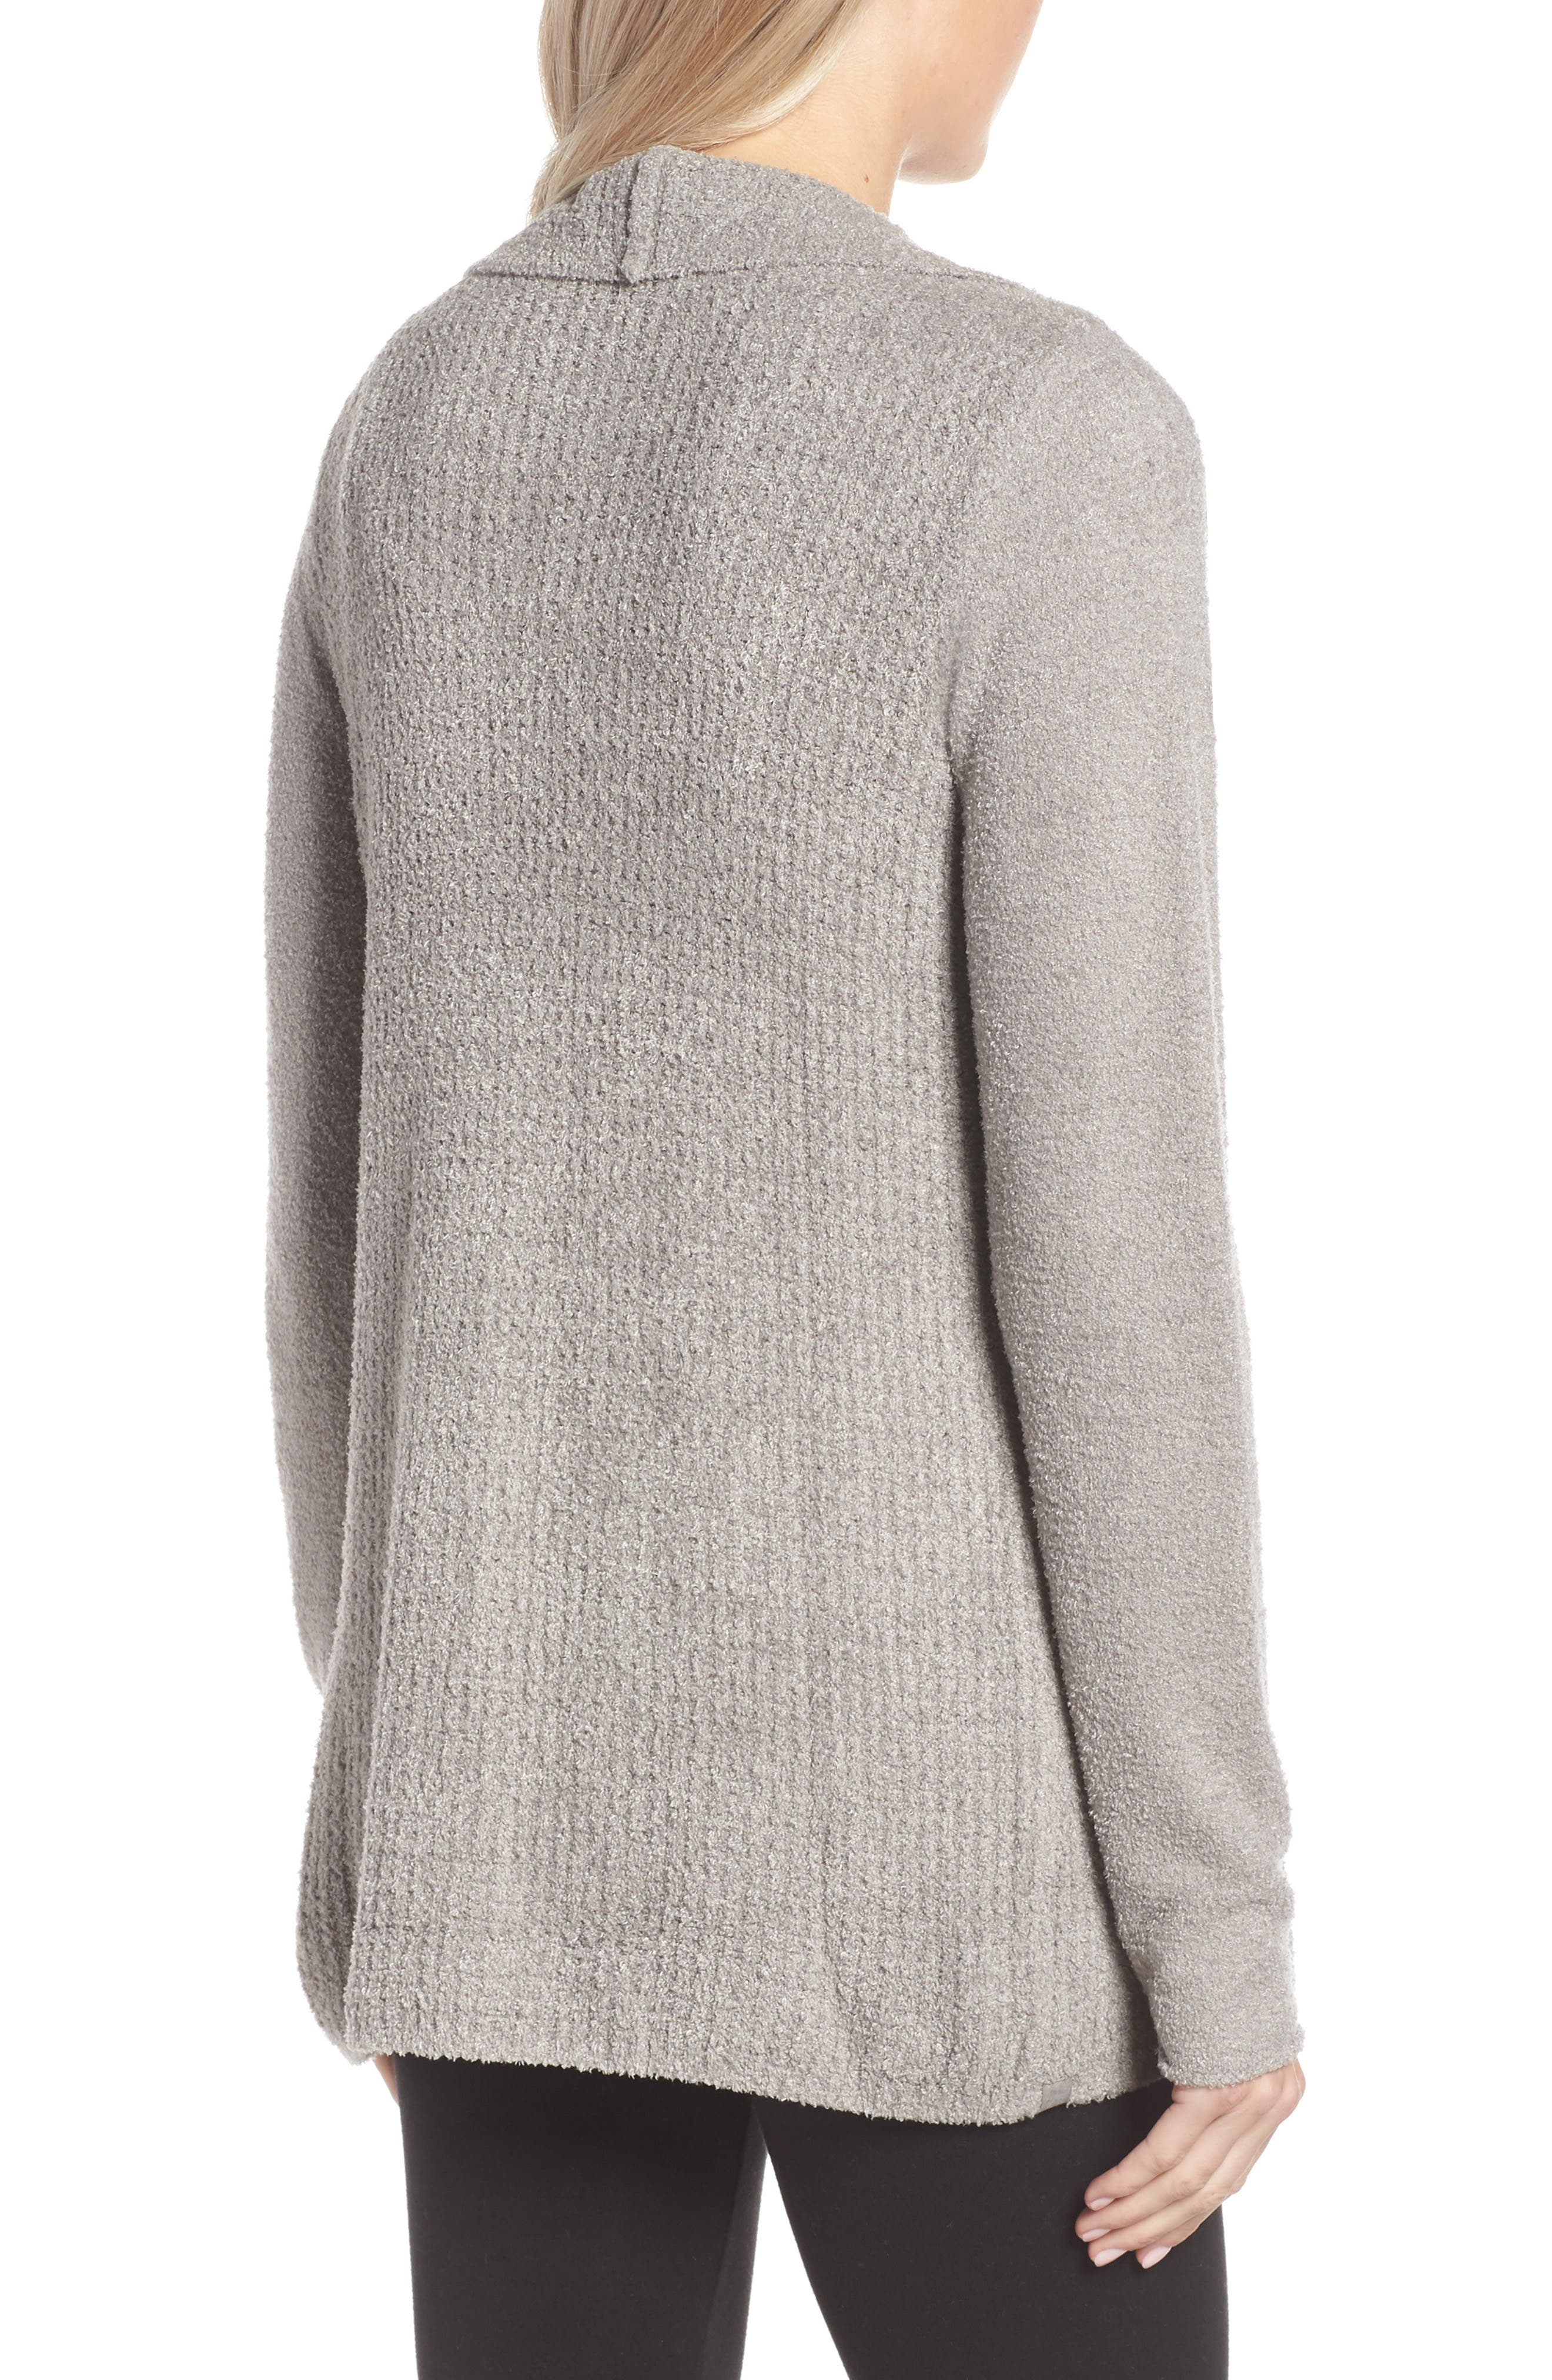 BAREFOOT DREAMS<SUP>®</SUP>, Cozychic<sup>®</sup> Lite Coastal Cardigan, Alternate thumbnail 2, color, PEWTER